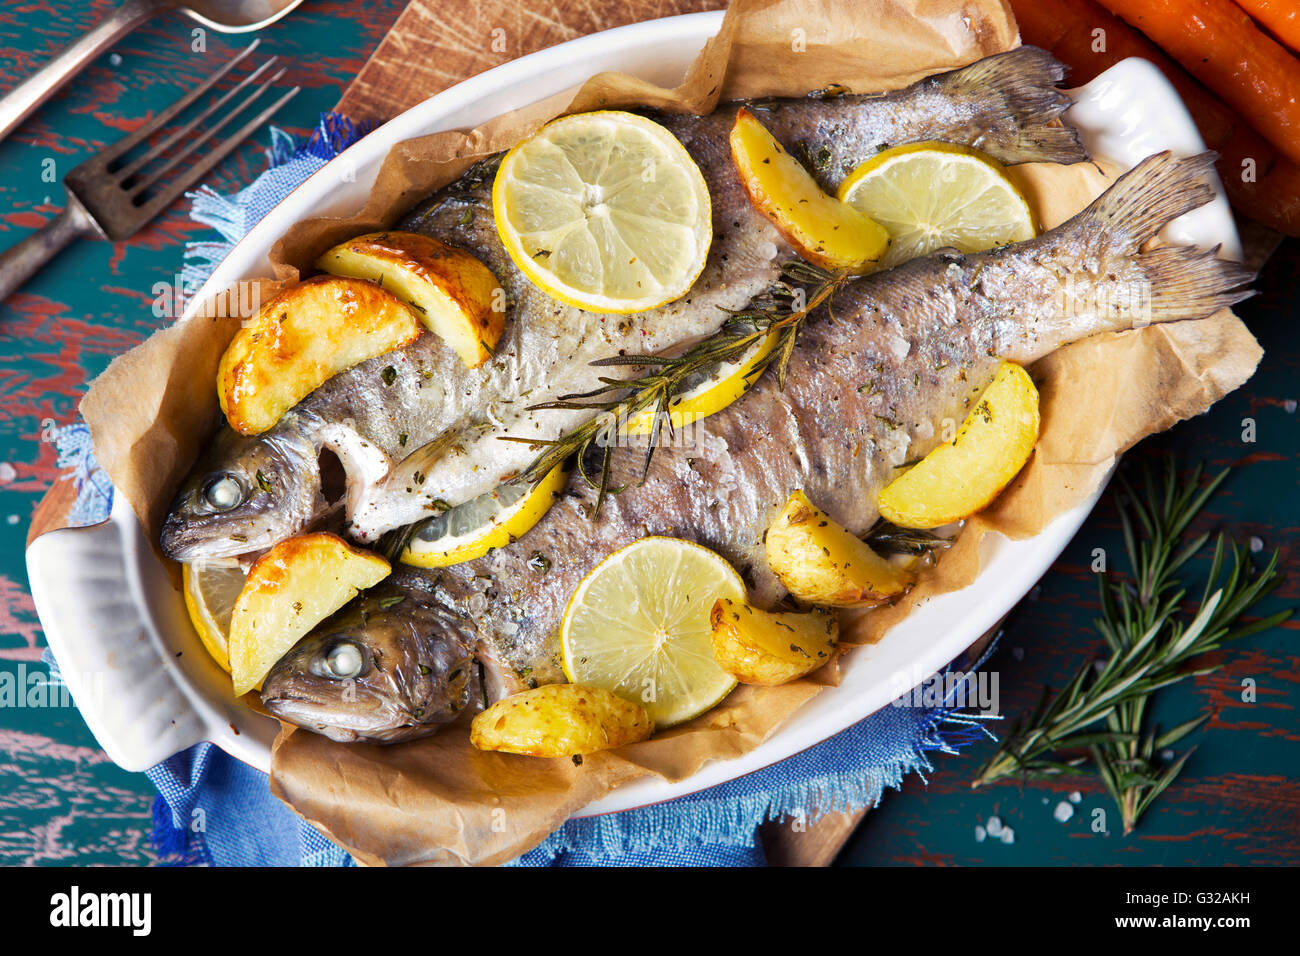 An oven roasted trout in a casserole on a rustic table. With carrots and potatoes on the side. - Stock Image